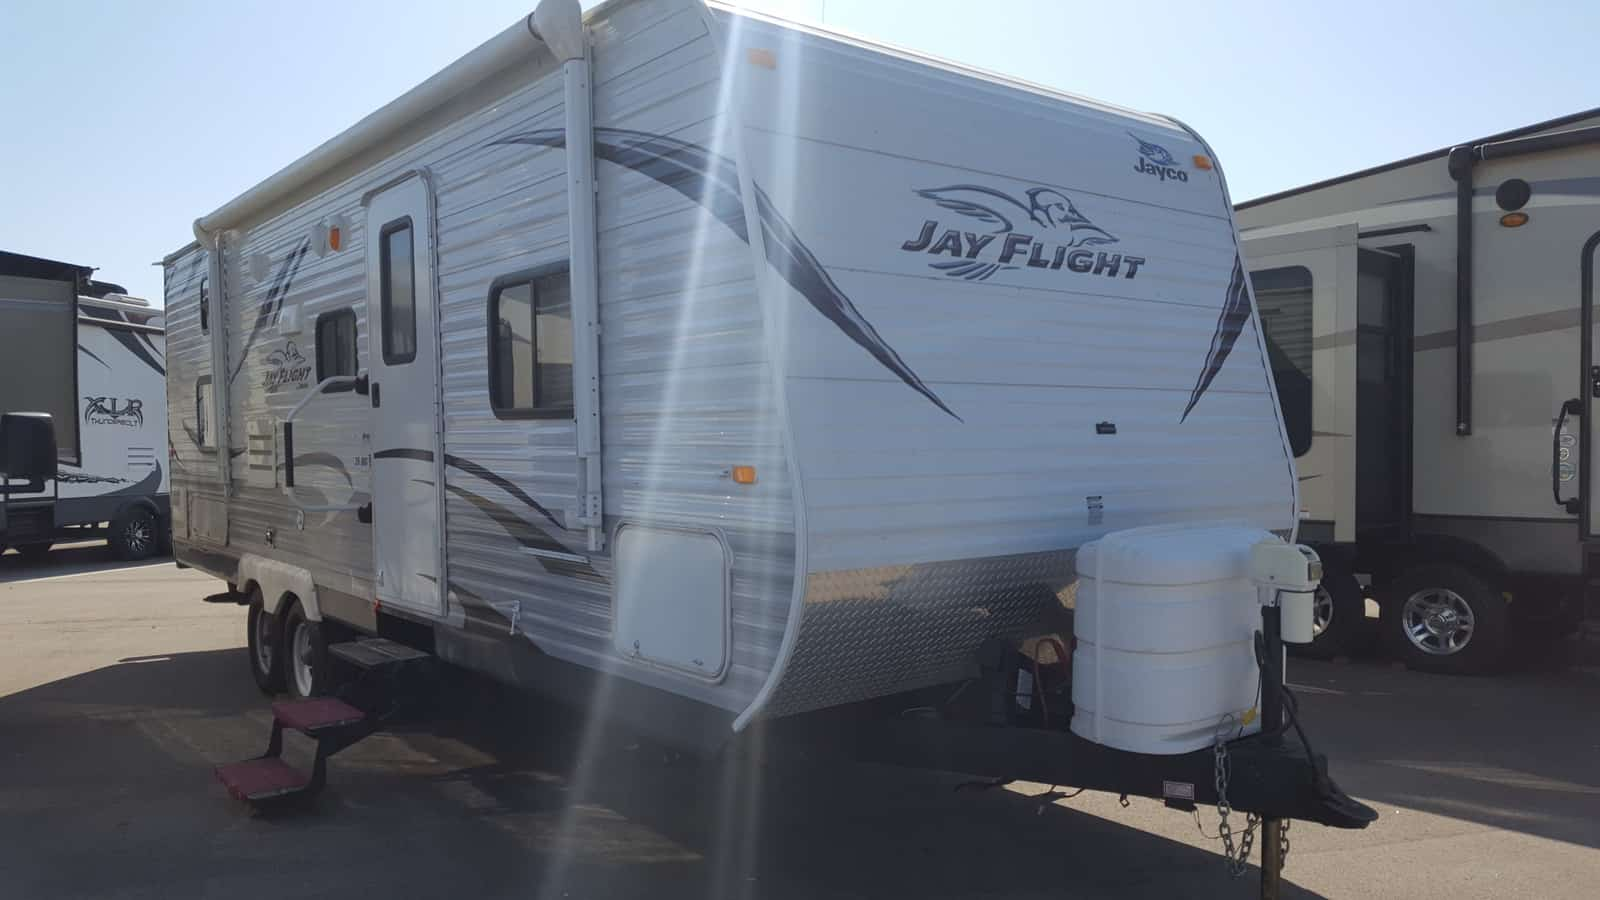 USED 2012 Jayco JAY FLIGHT 25BHS - American RV